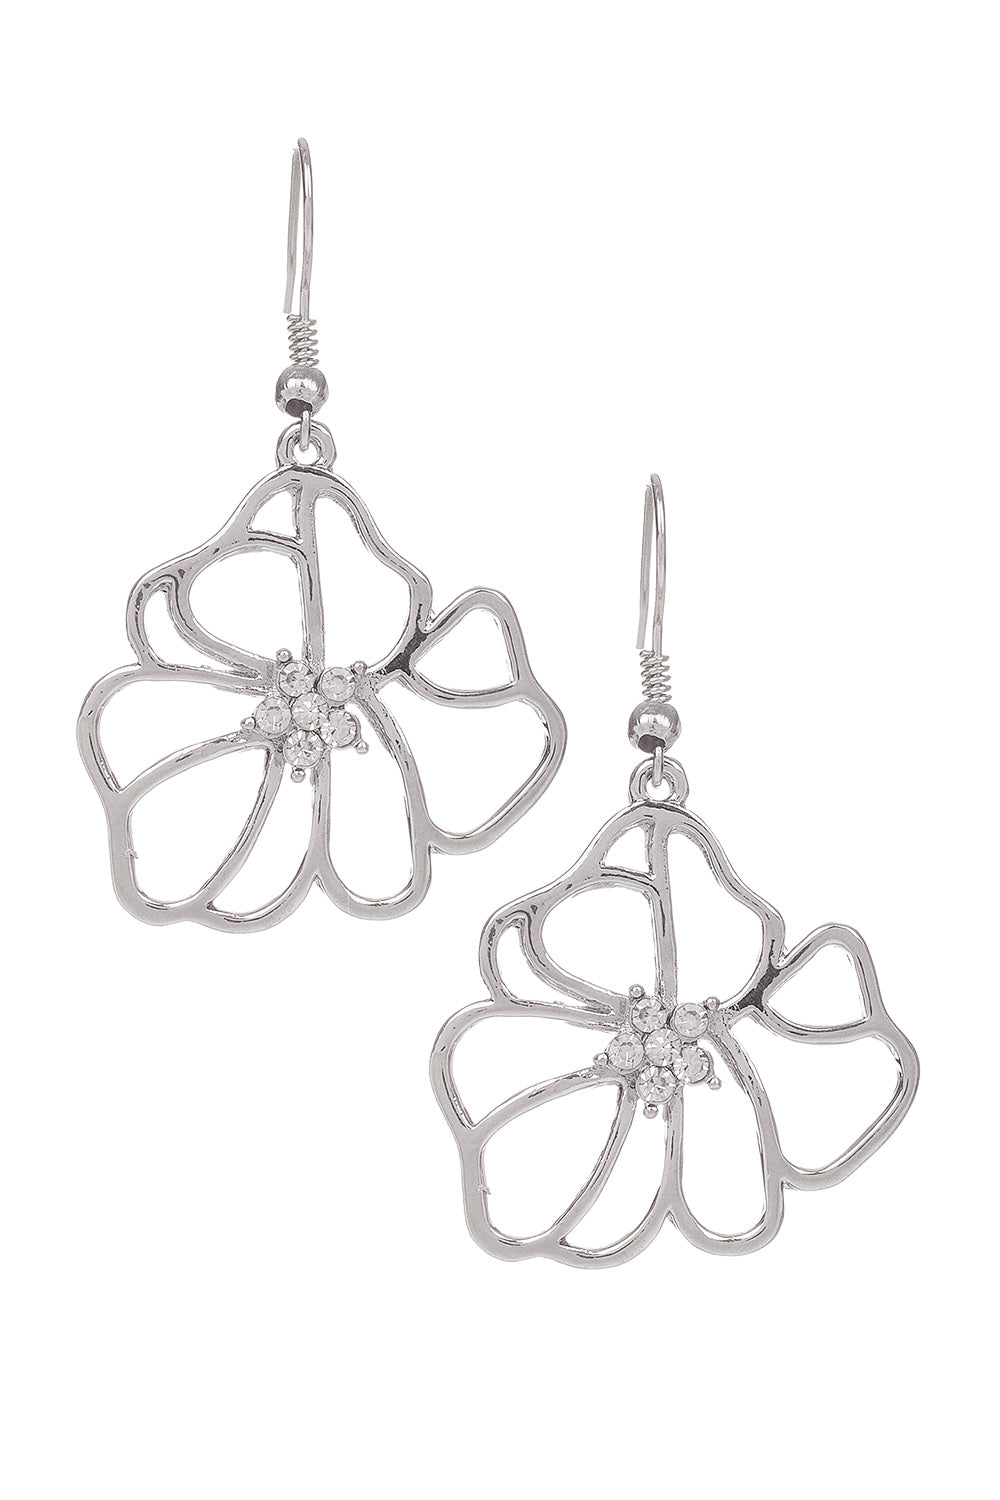 Type 4 Flower Tower Earrings